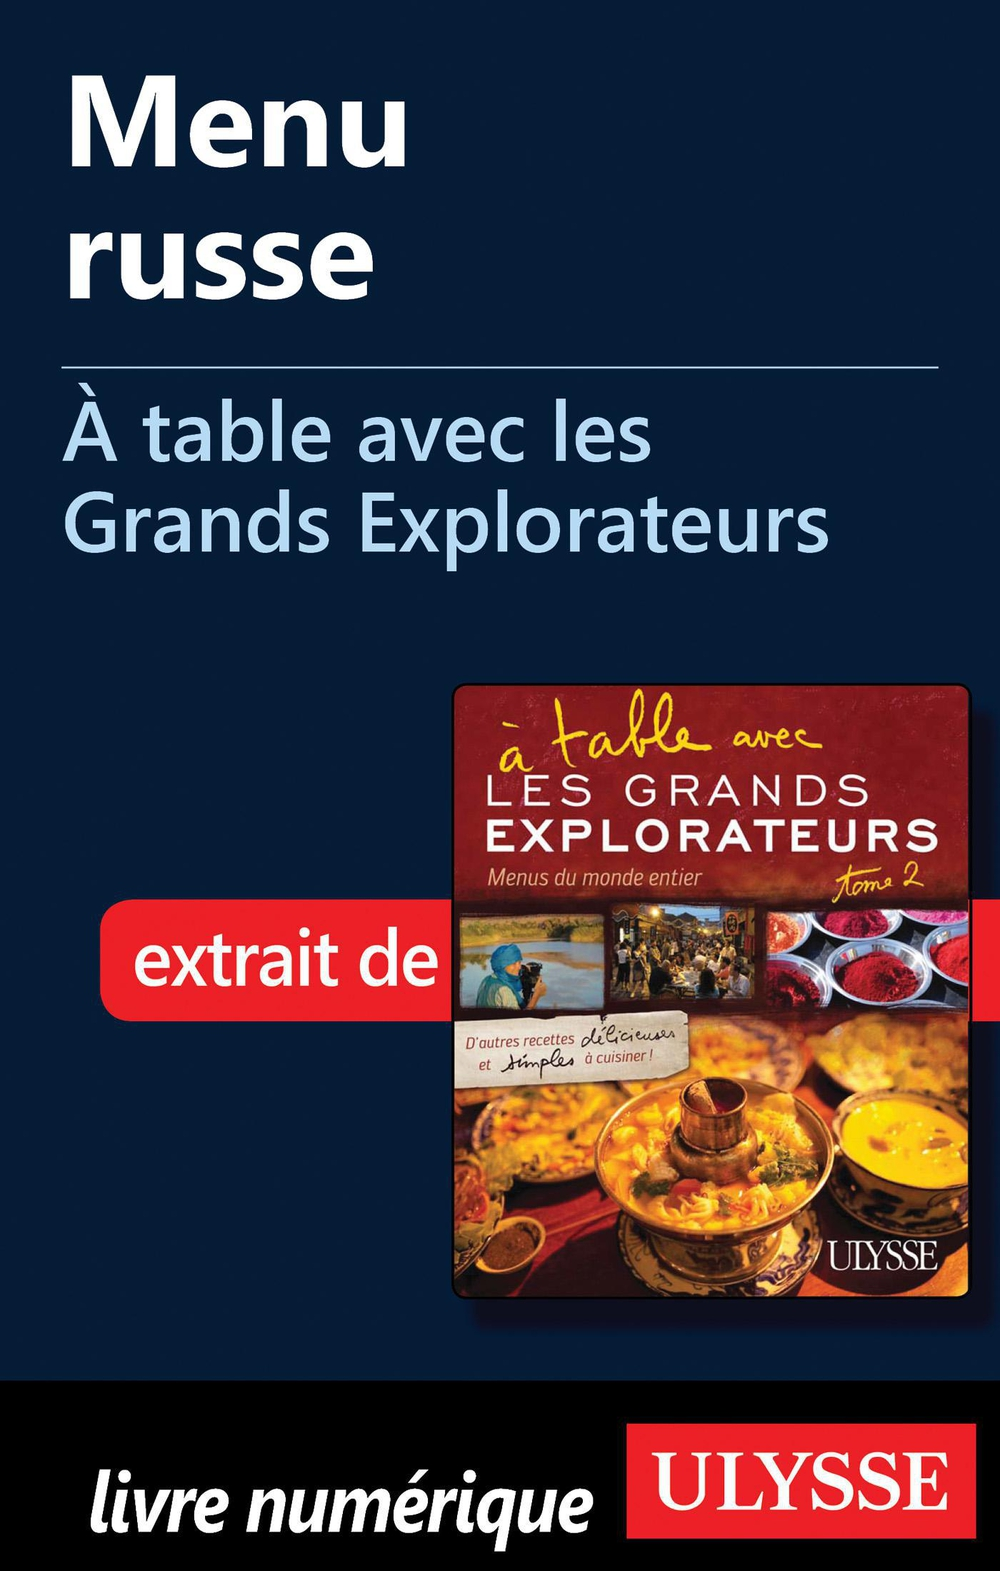 Menu russe - À table avec les Grands Explorateurs By: Michel Drachoussoff